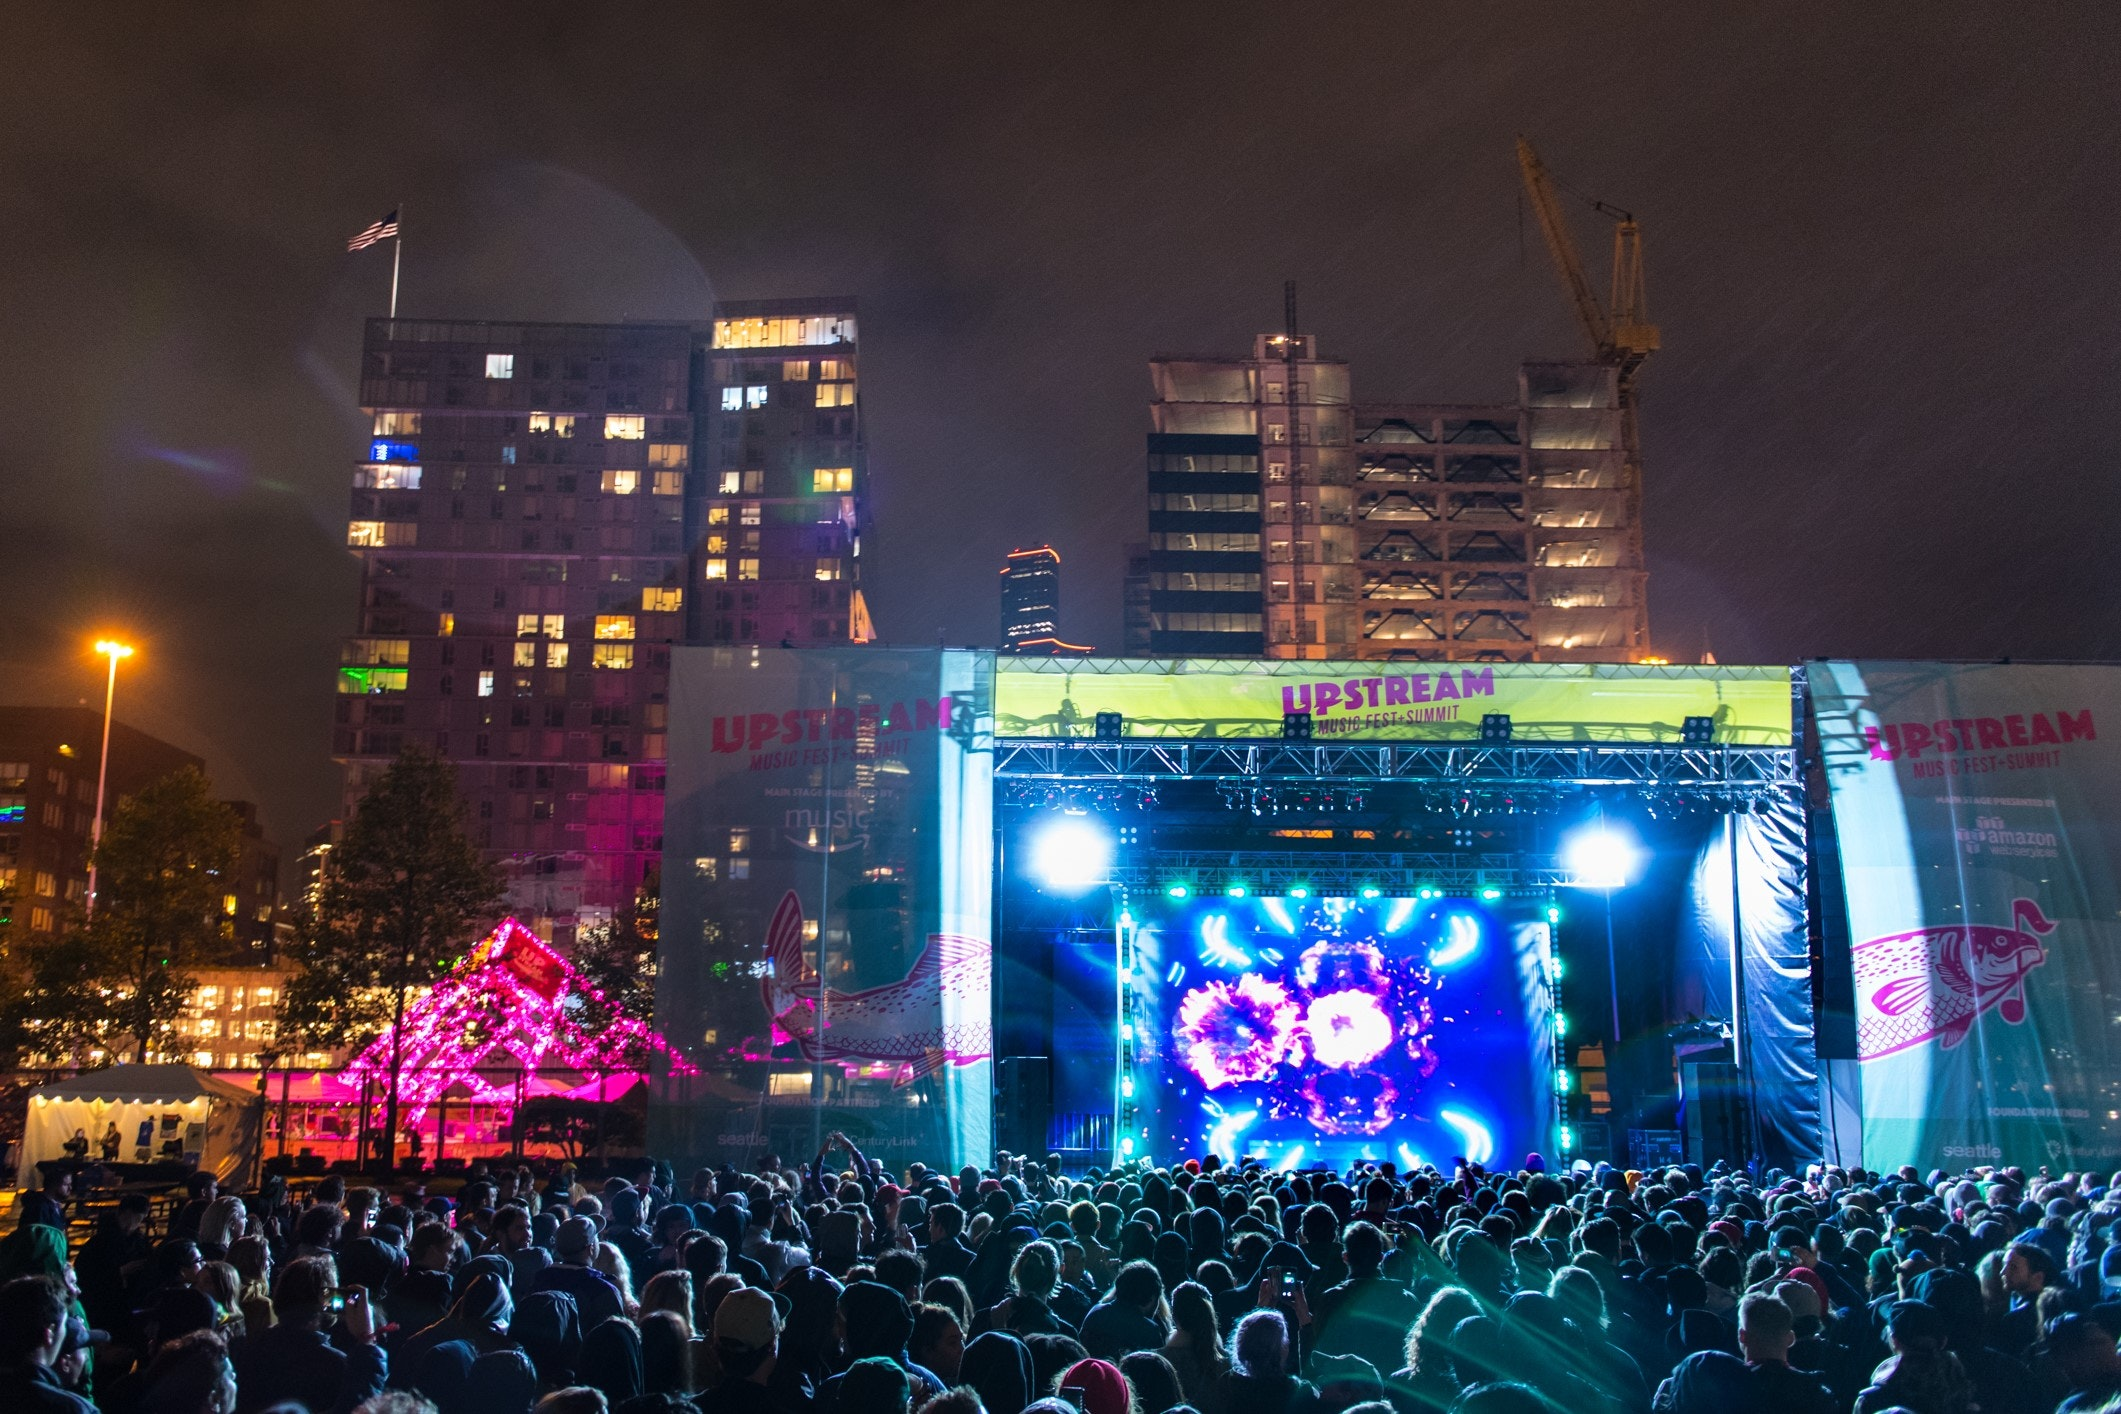 The main stage at Upstream 2017. This year's festival is June 1-3.